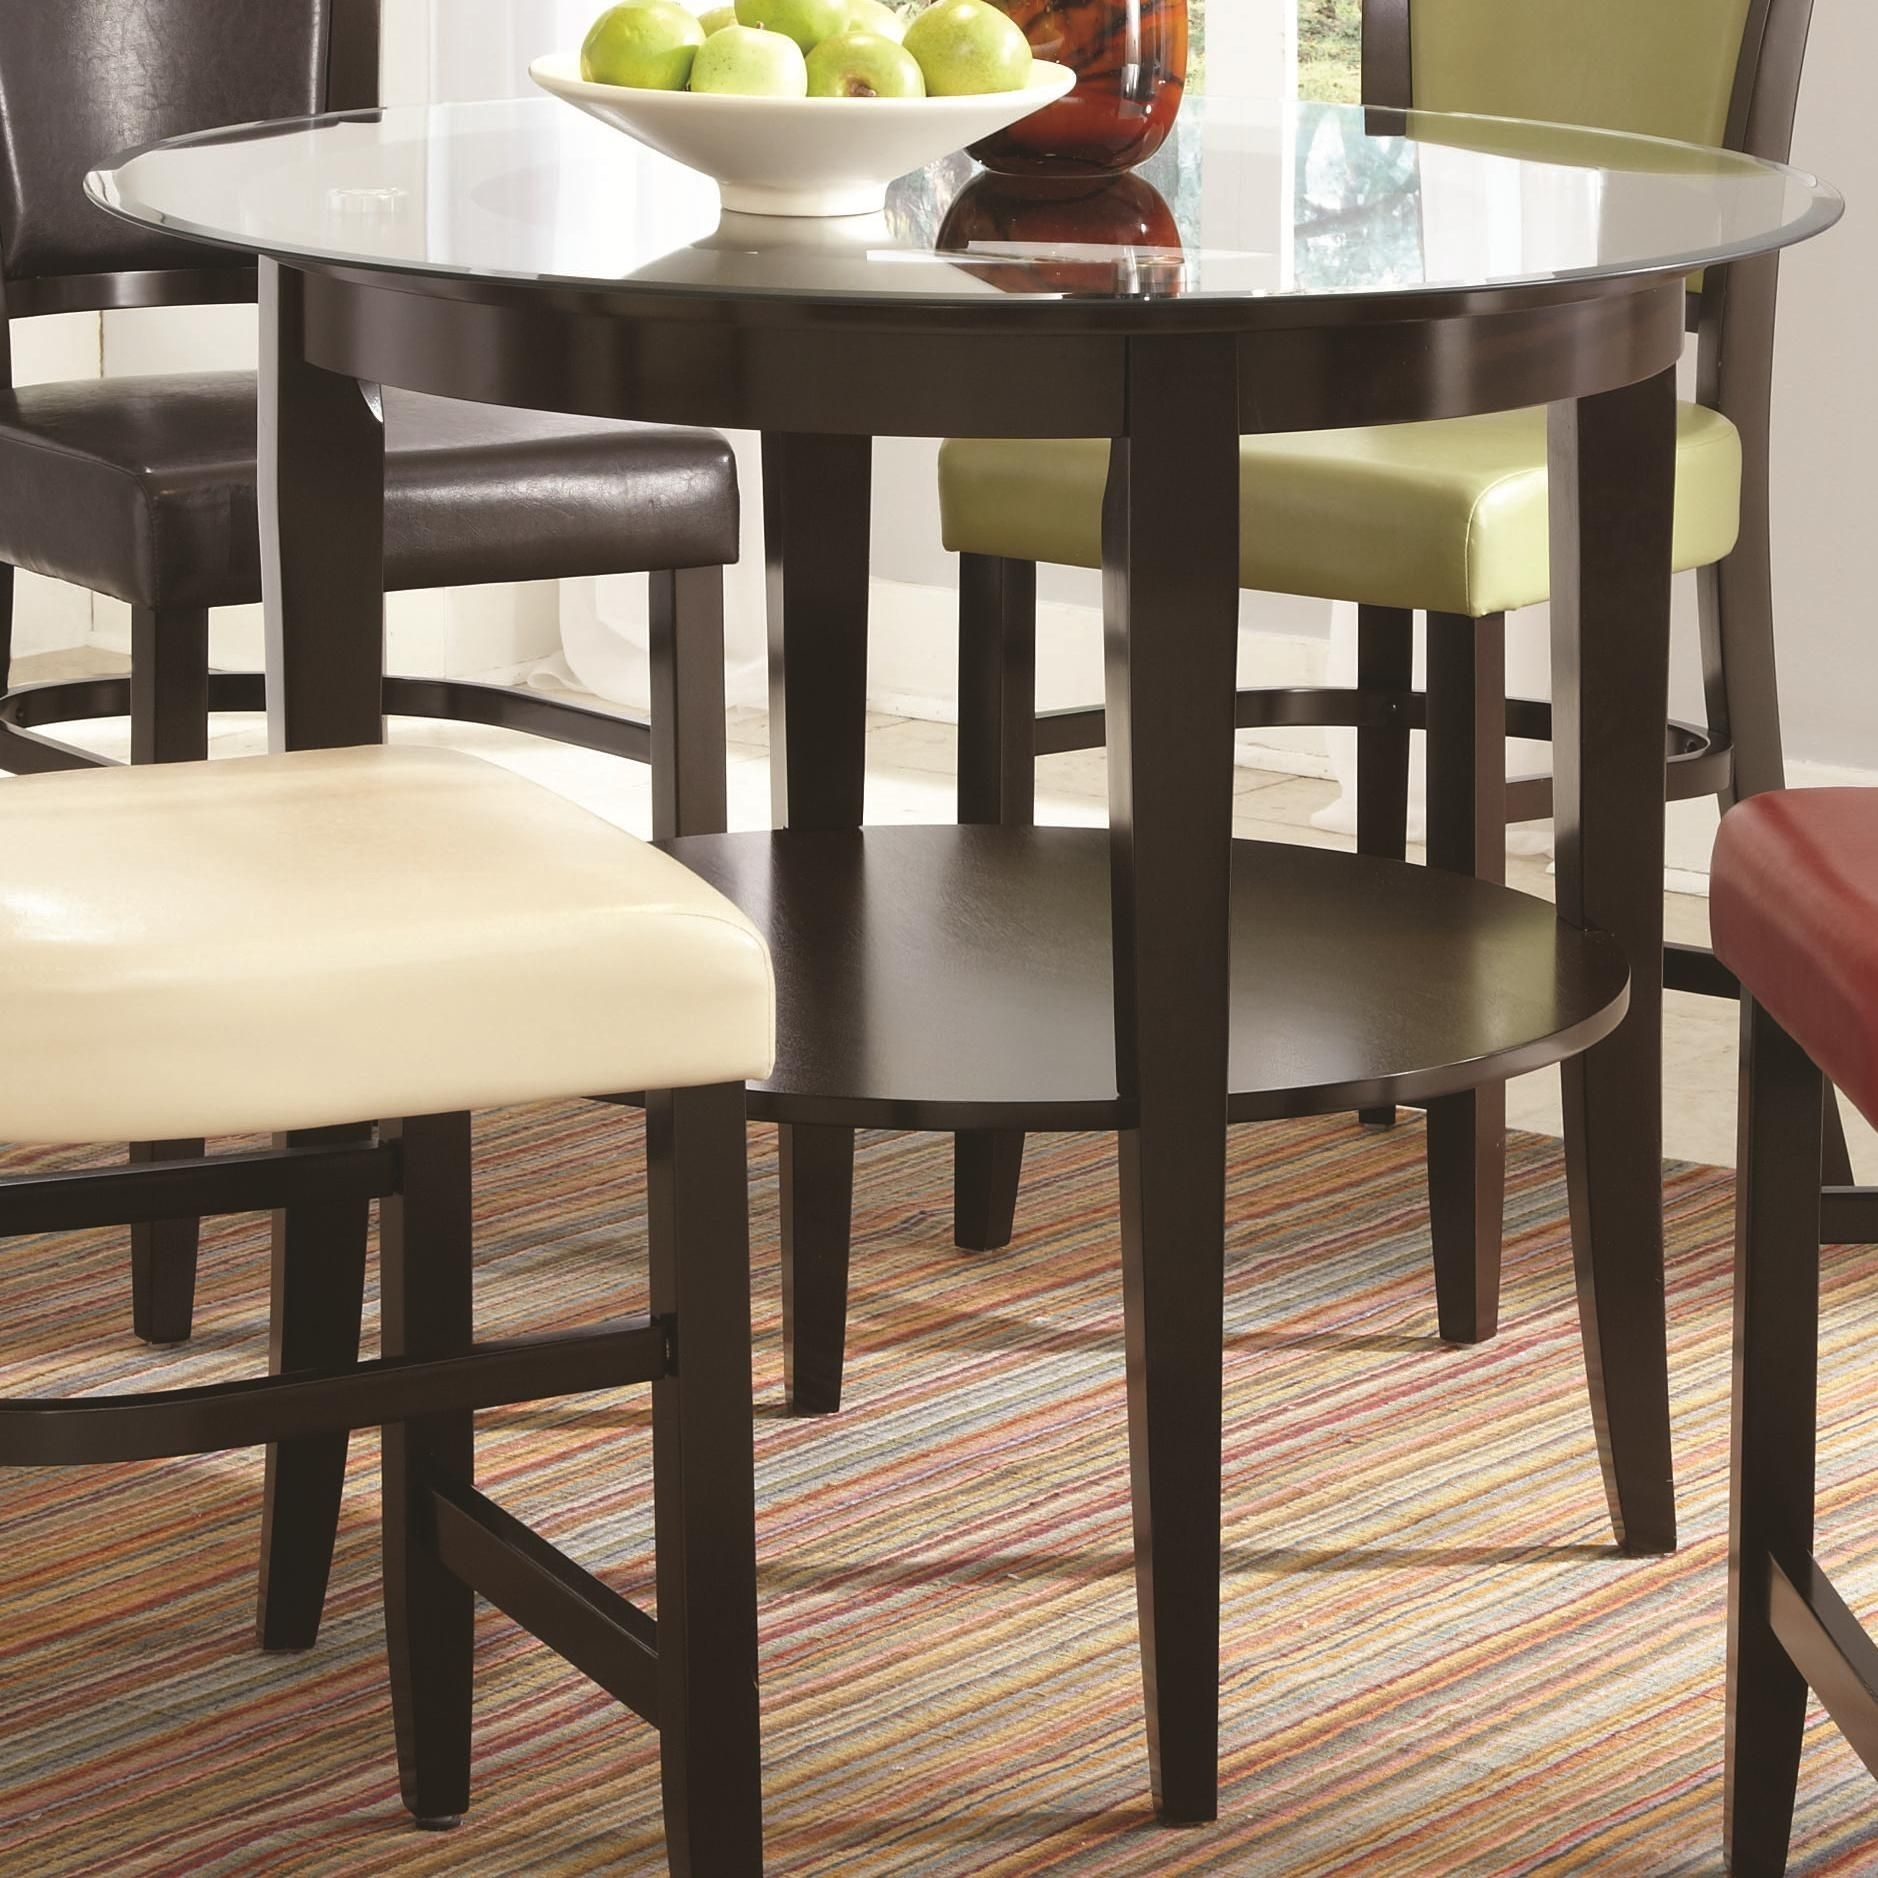 Picture of: Counter Height Round Dining Table Ideas On Foter